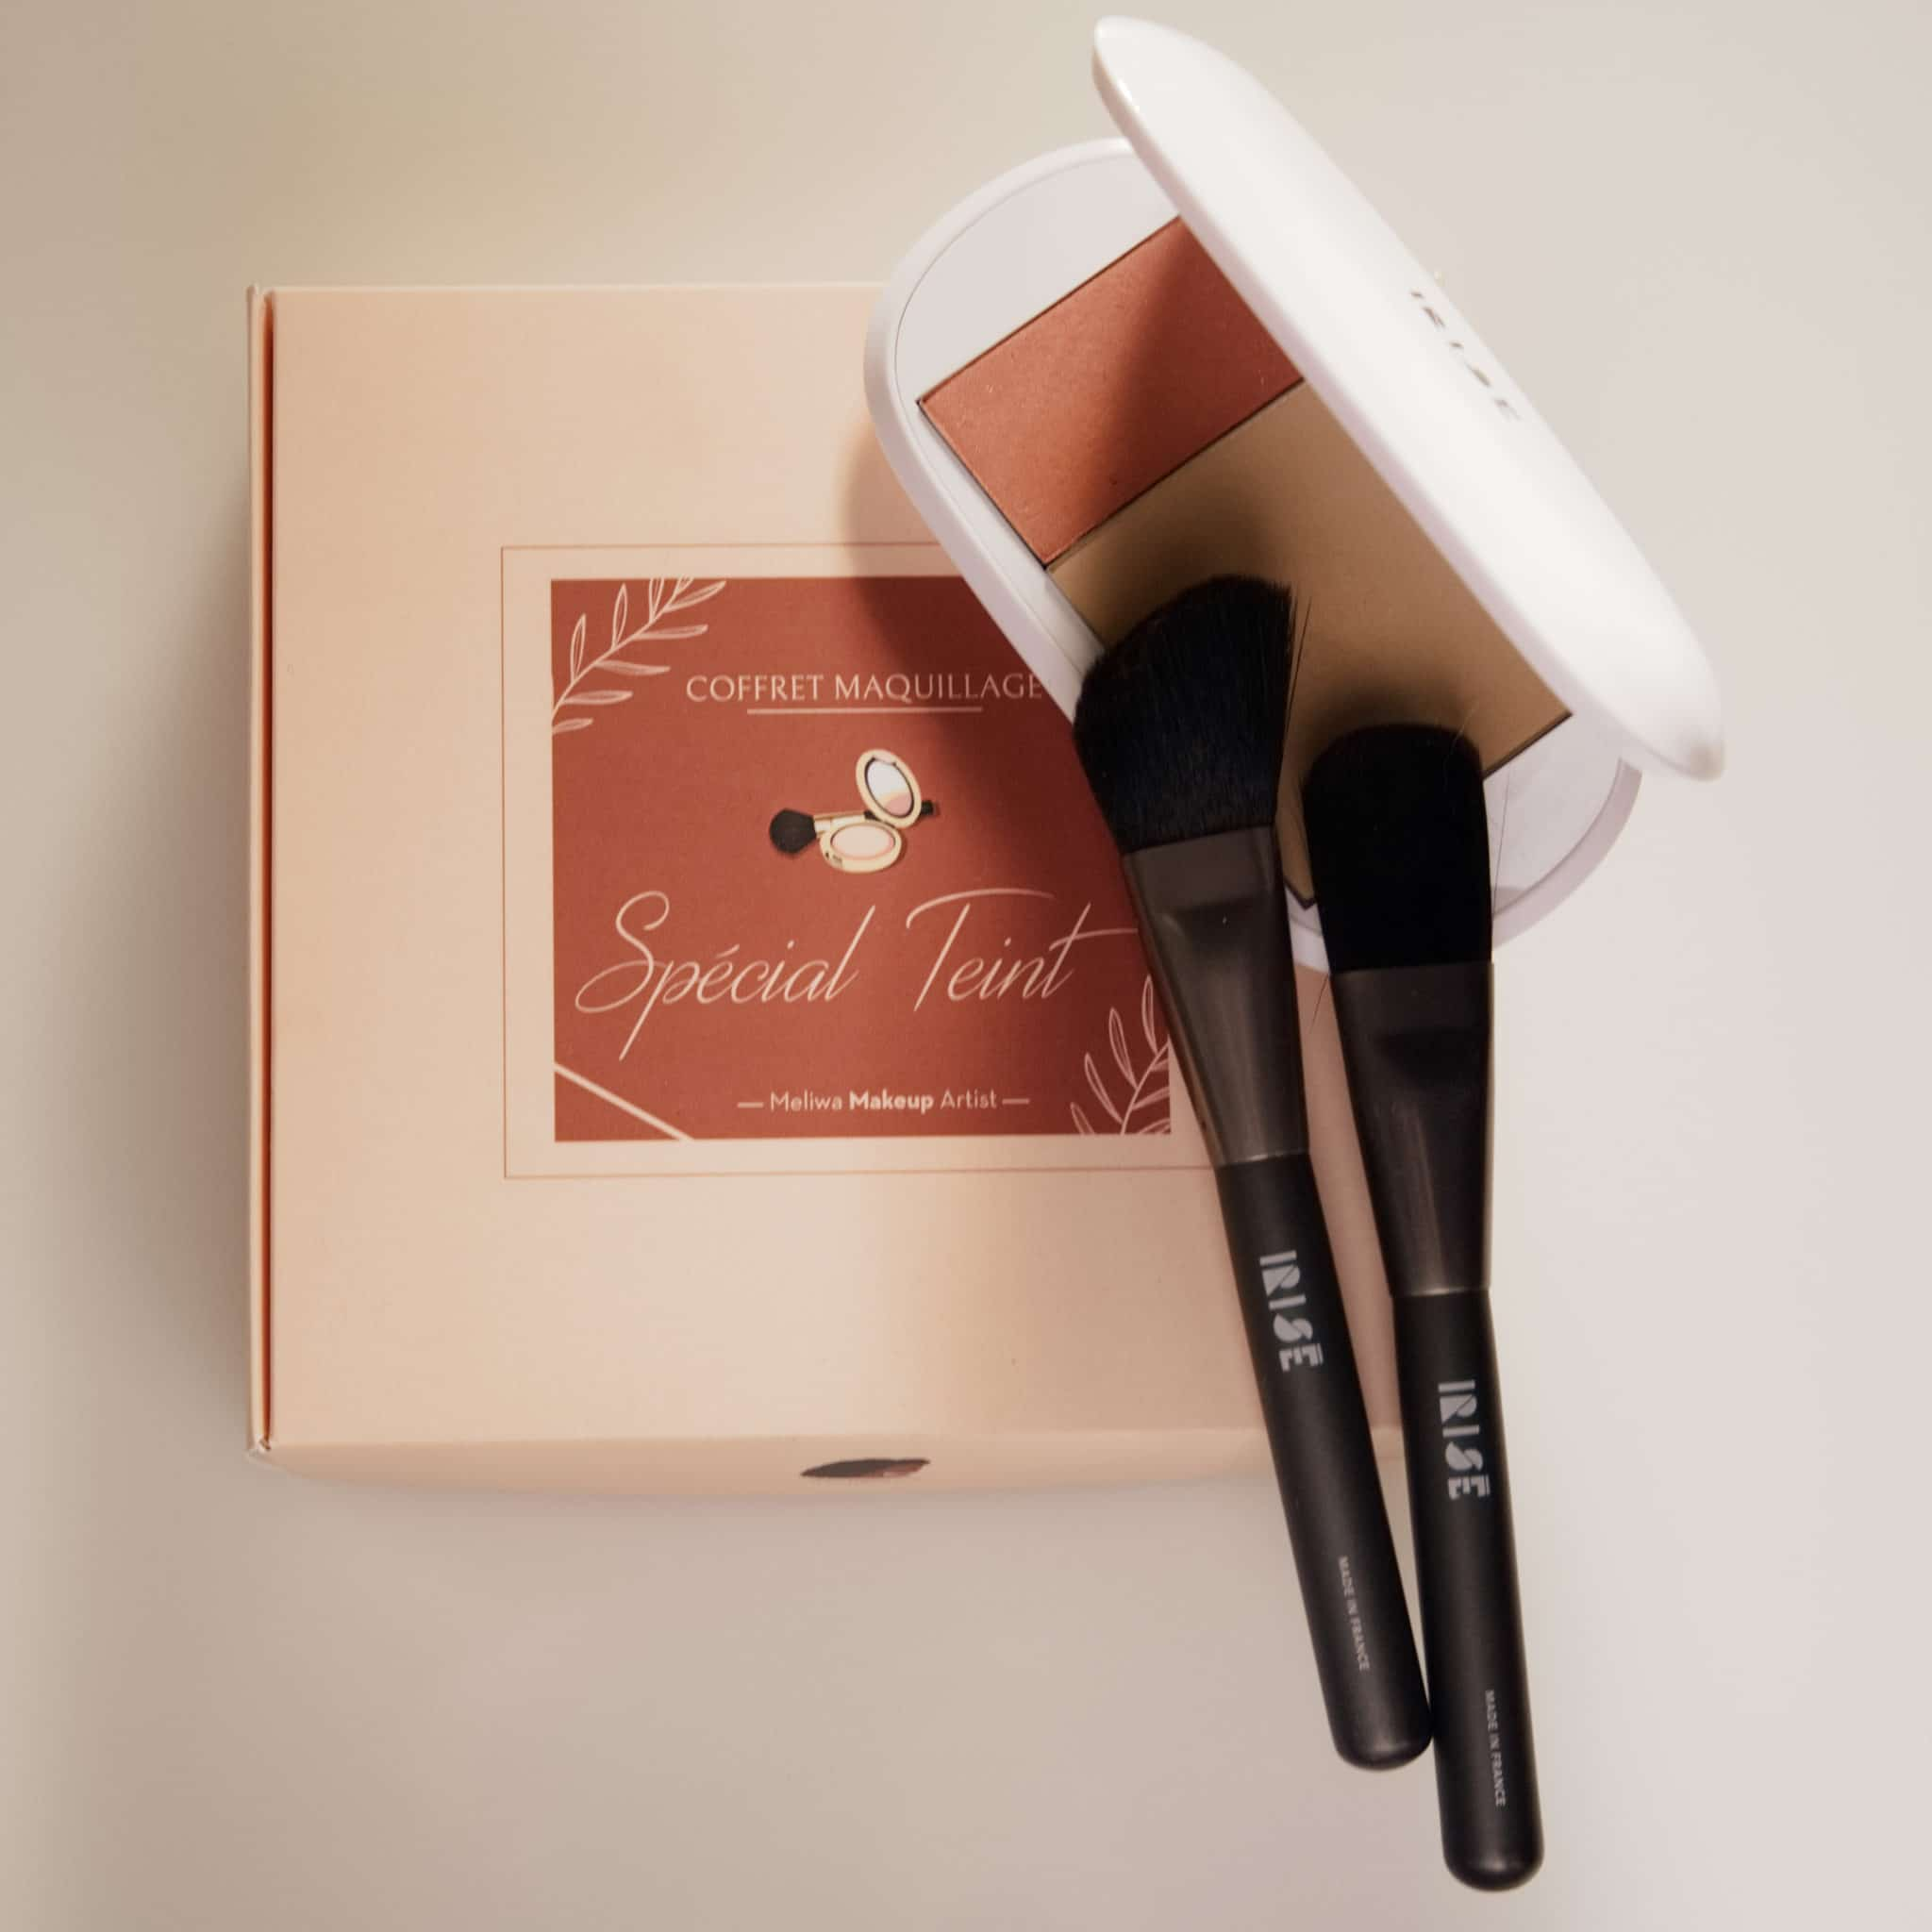 maquillage - nantes - anniversaire - teint - maquilleuse - cours maquillage - cadeau